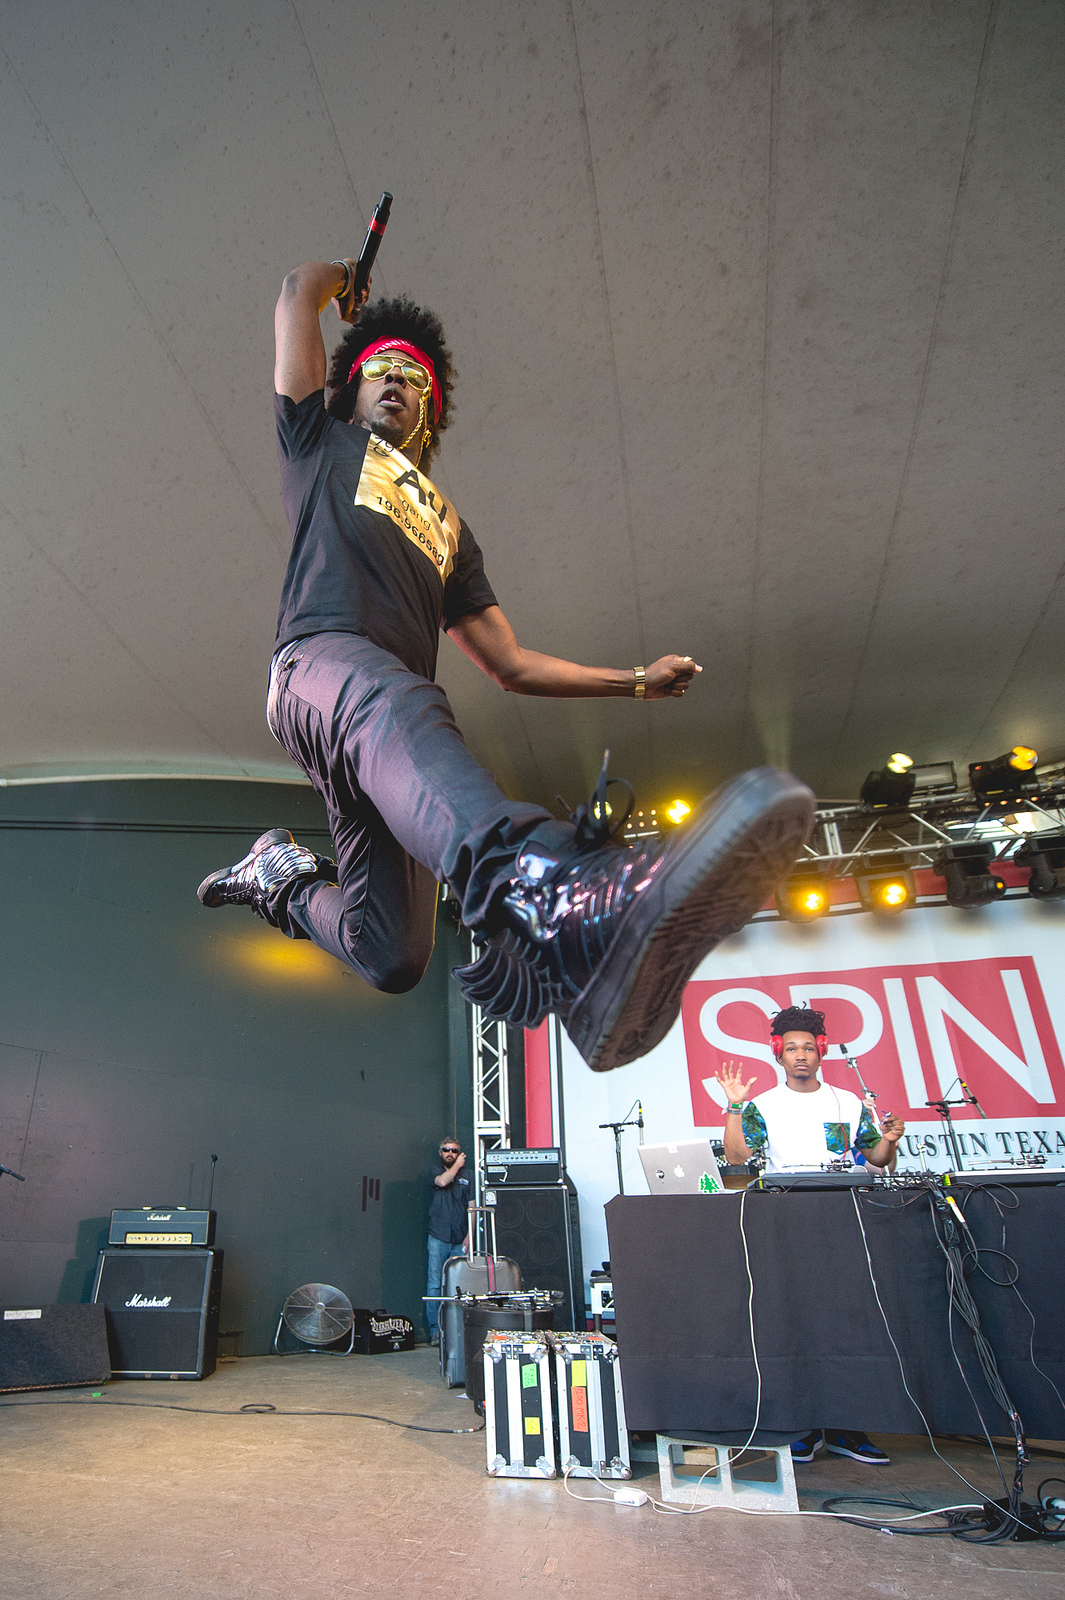 Atlanta's Trinidad James shows us his vertical leap at Stubb's.